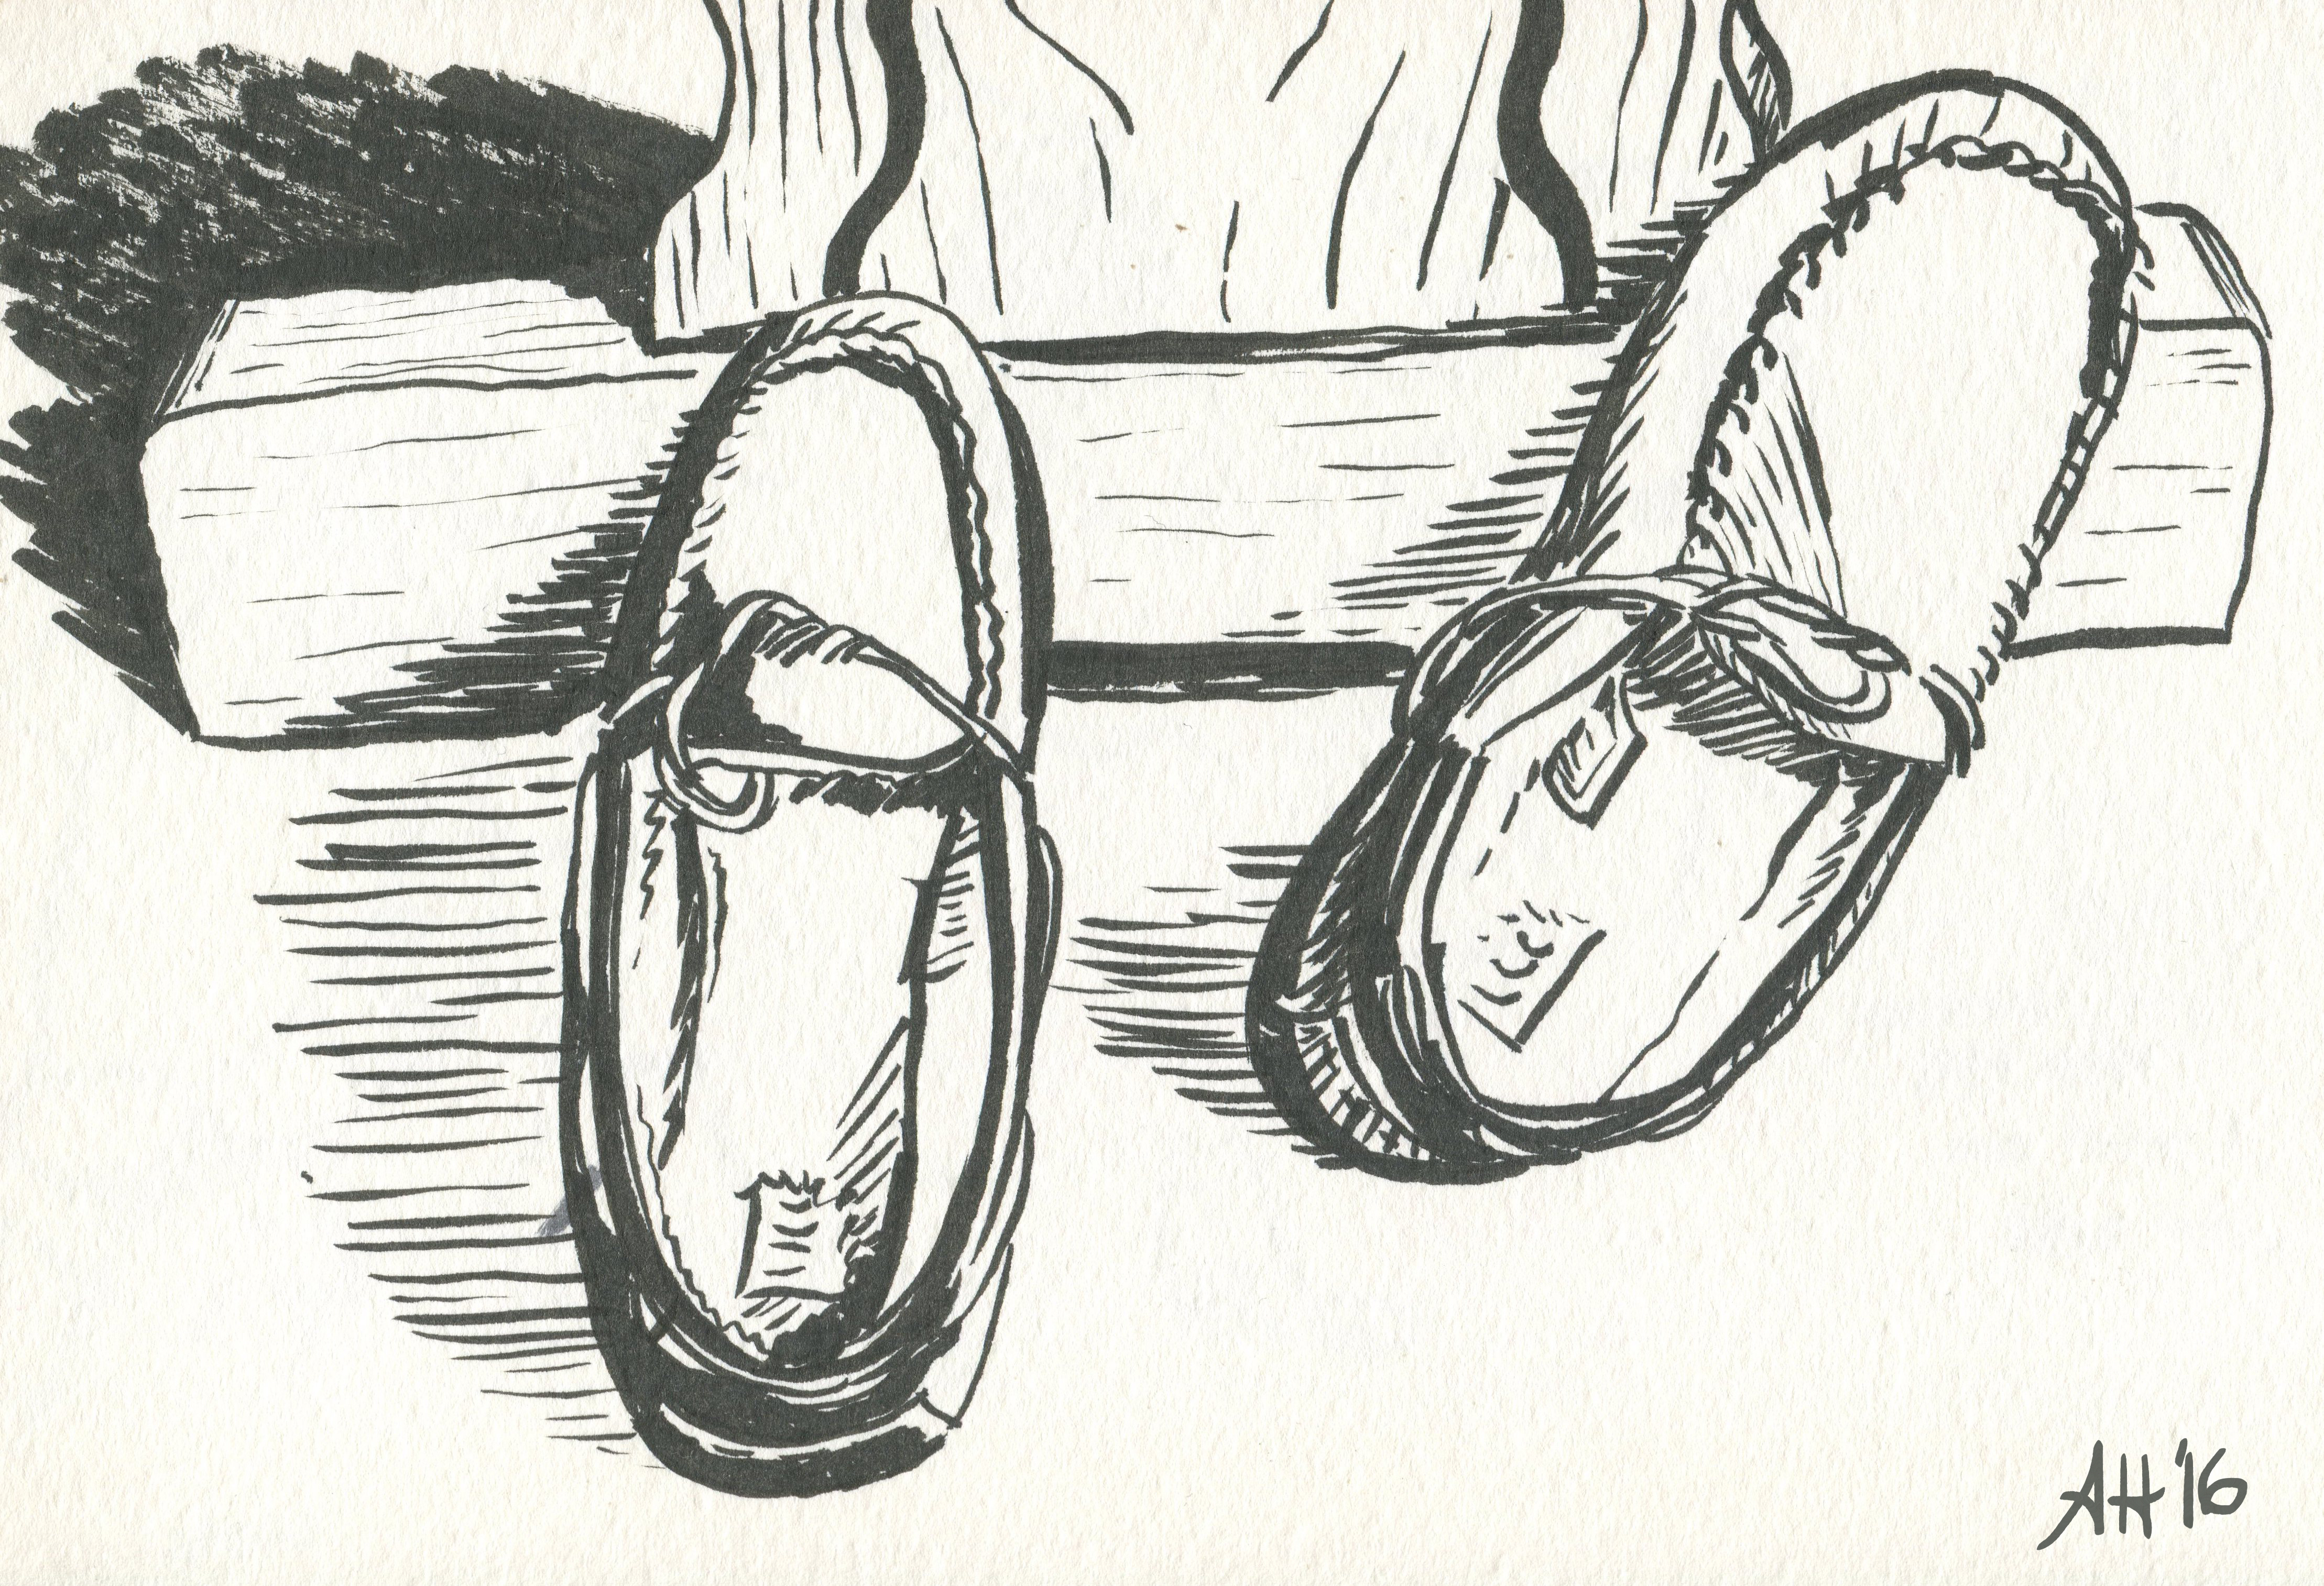 a pair of driving moccasins laying in front of a coffee table by alleanna harris